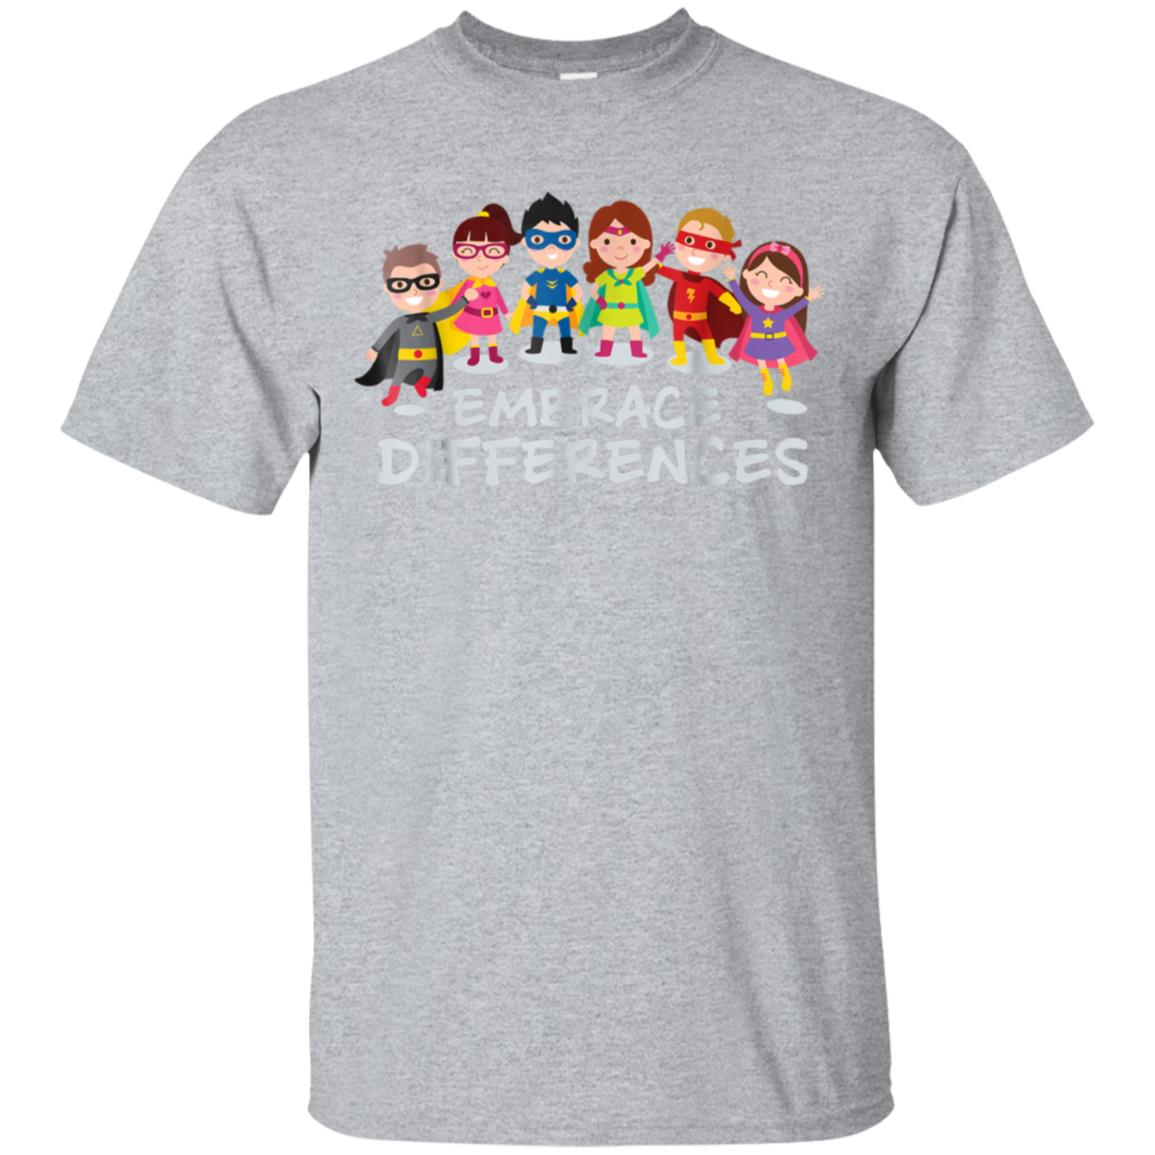 Embrace Differences Autism Awareness Superhero Kids T Shirt 99promocode